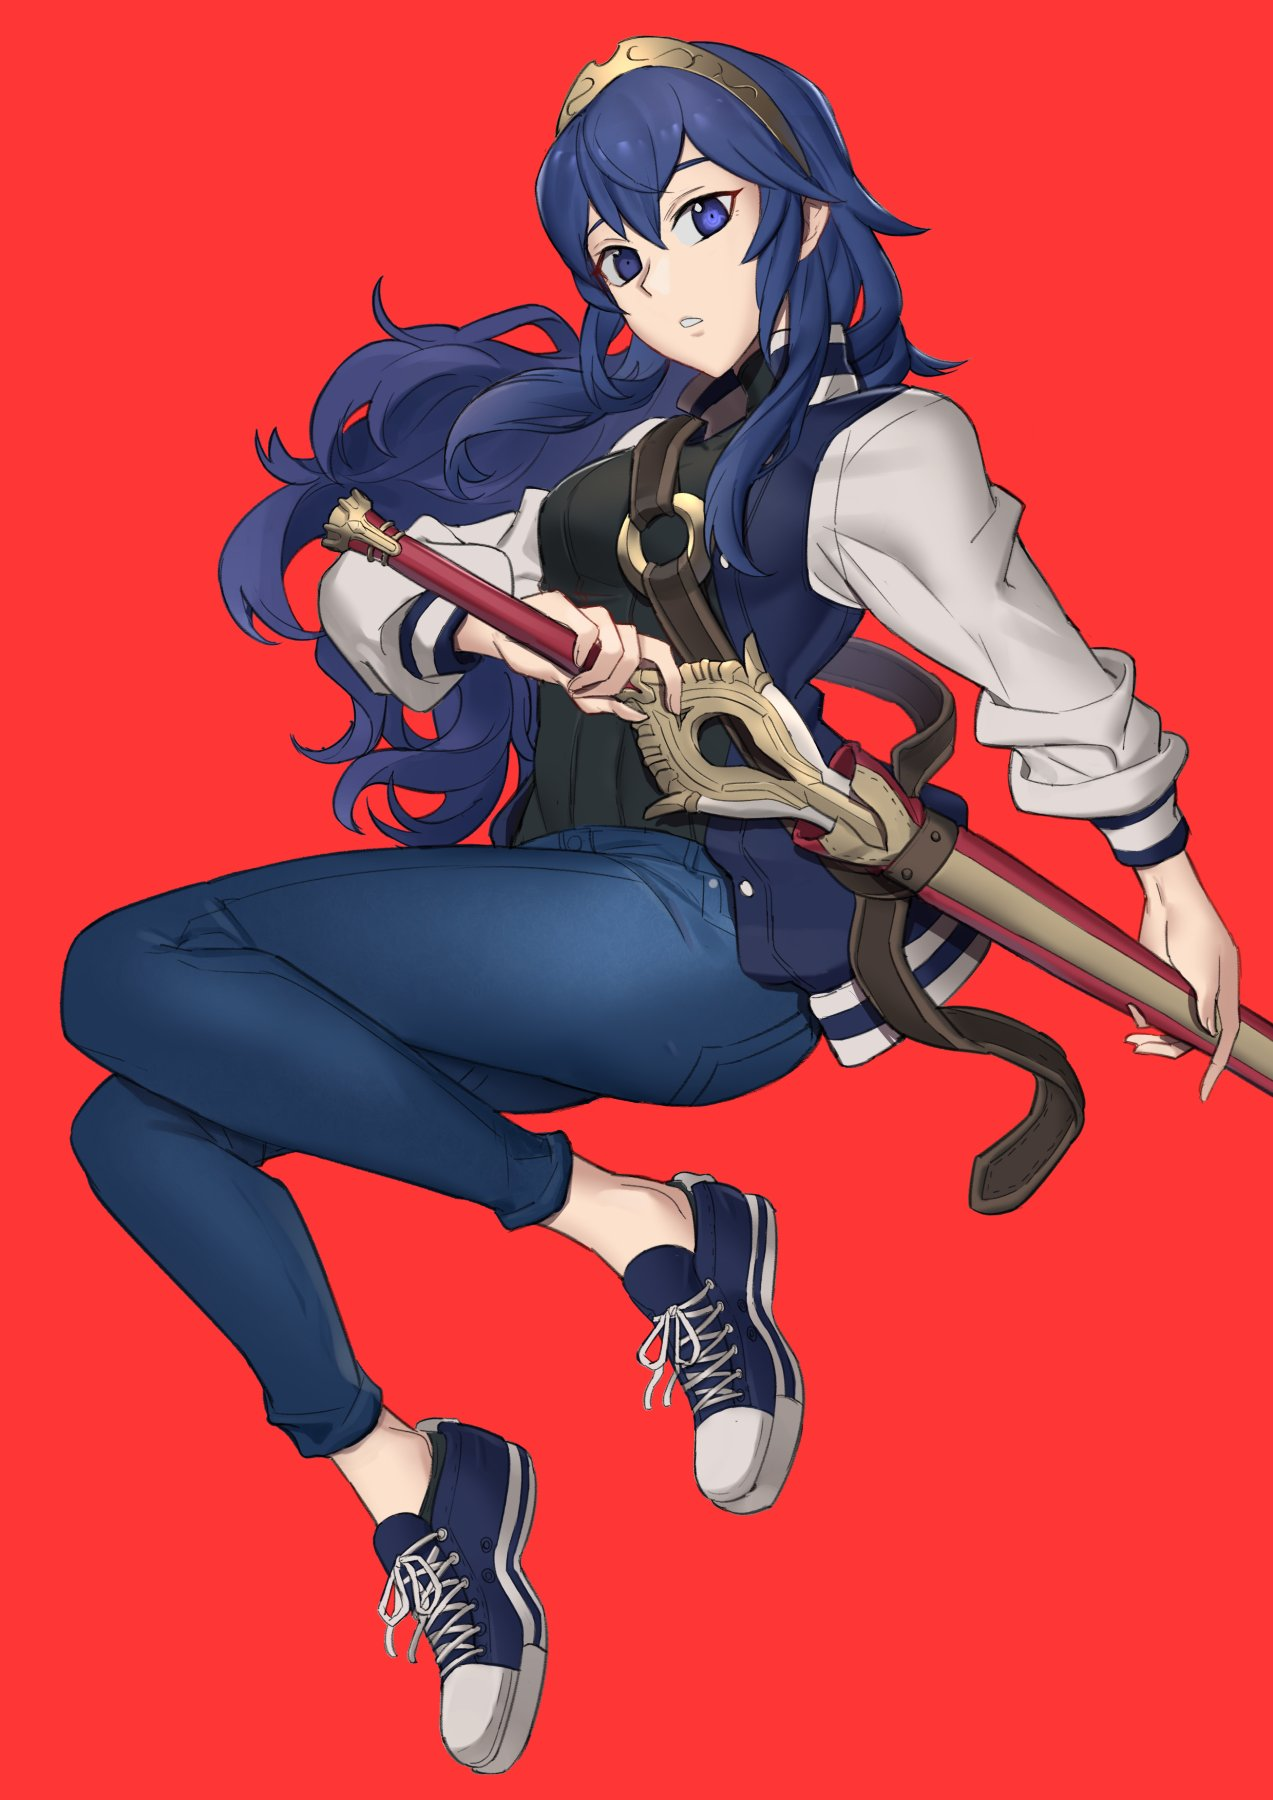 1girl alternate_costume blue_eyes blue_hair closed_mouth converse denim ebinku falchion_(fire_emblem) fire_emblem fire_emblem_awakening full_body highres holding holding_weapon jacket jeans long_hair looking_at_viewer lucina_(fire_emblem) pants teeth tiara weapon